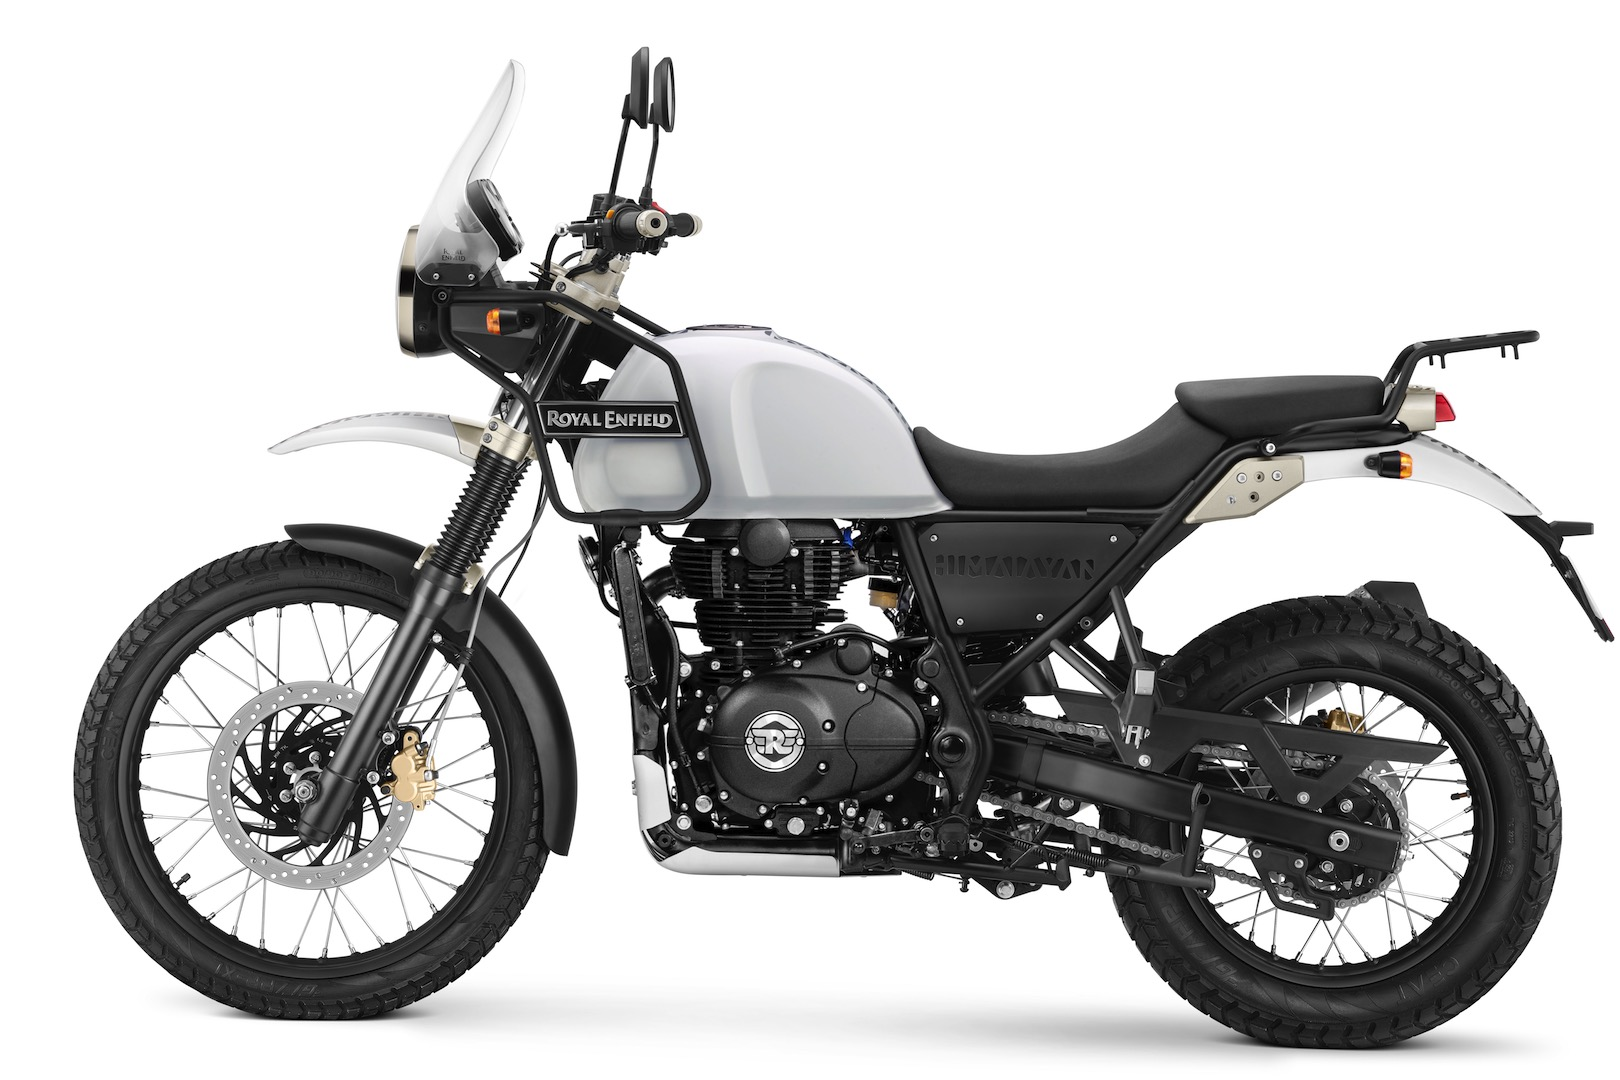 2018 royal enfield himalayan adventure motorcycle review 13 fast facts. Black Bedroom Furniture Sets. Home Design Ideas